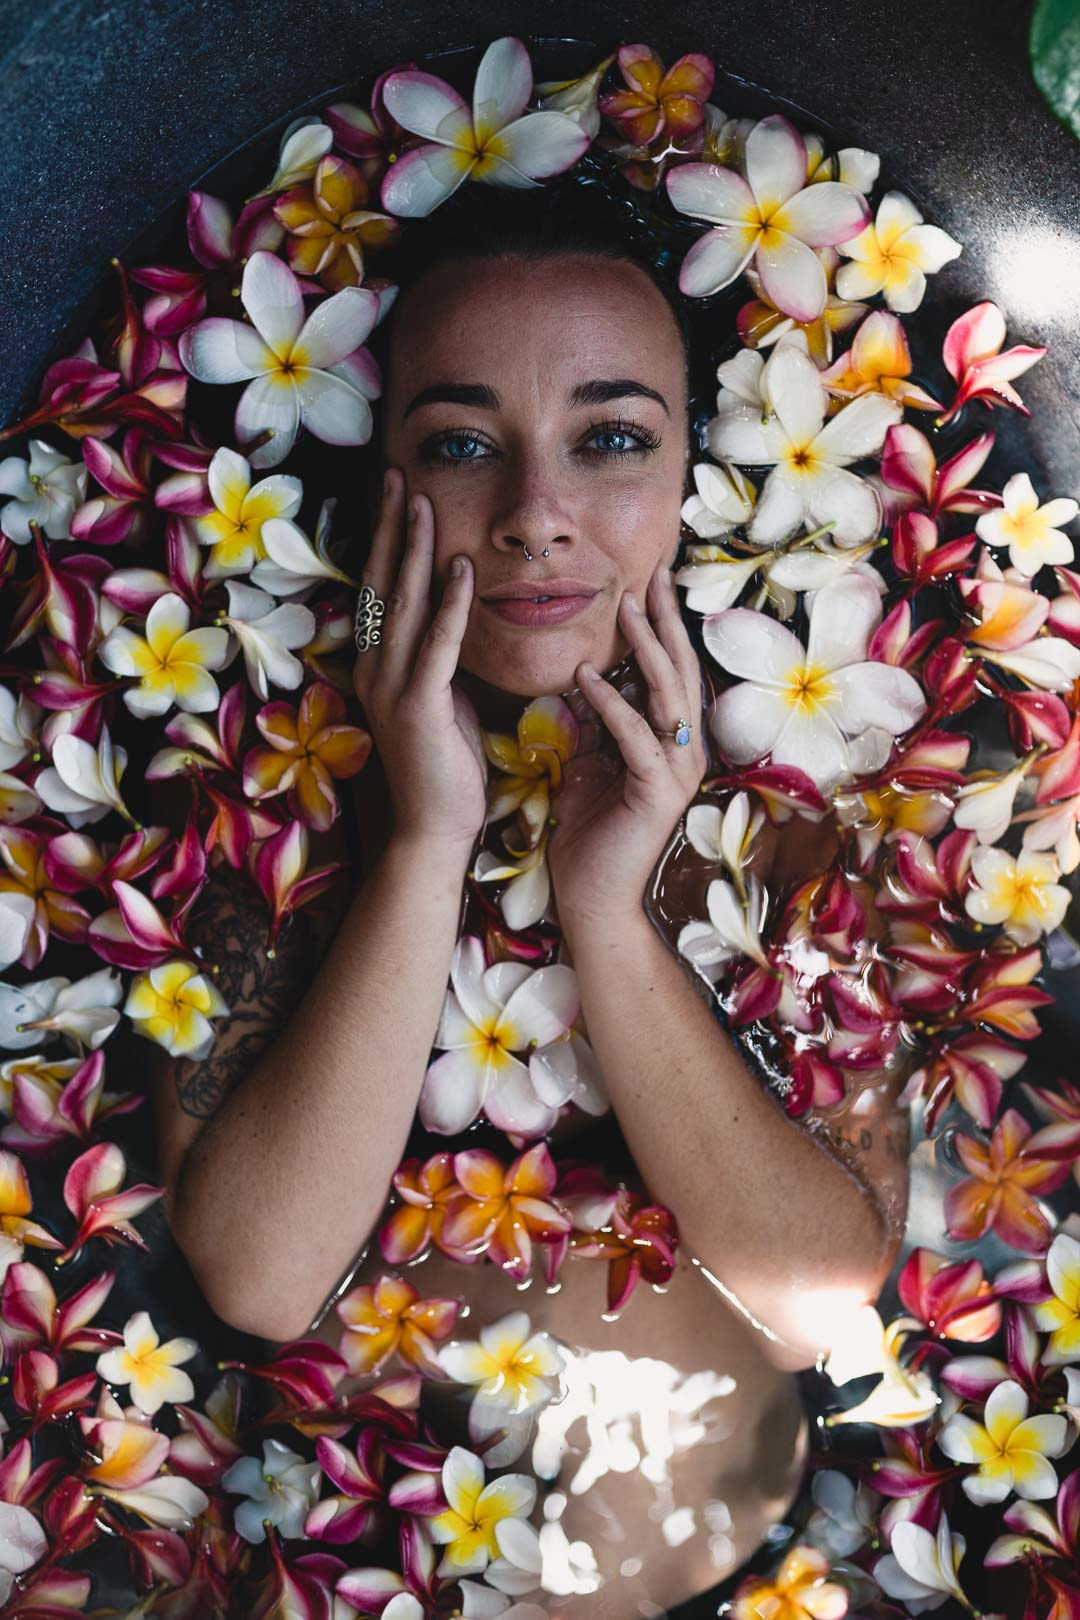 Woman model in a bathtub filled with colorful Balinese flowers